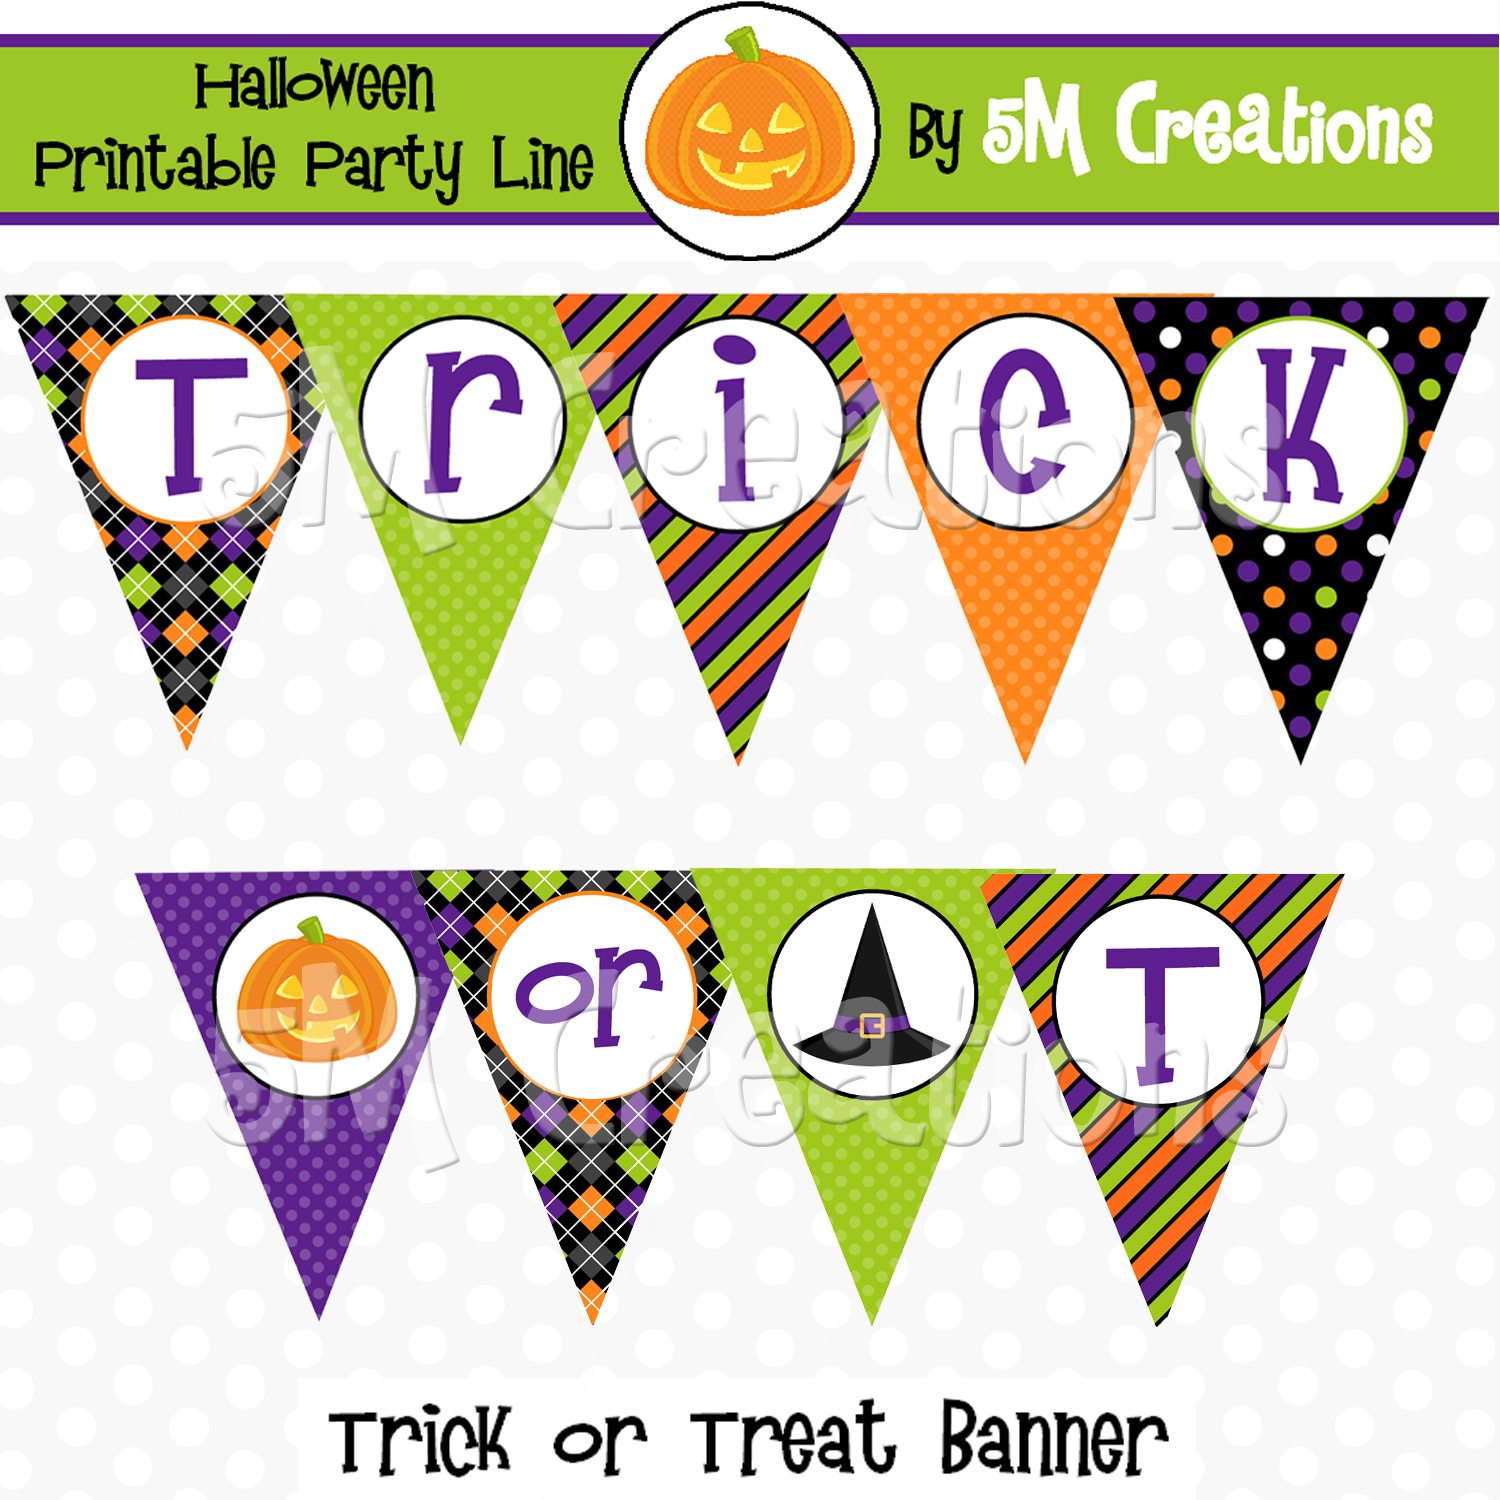 5m Creations Trick Or Treat Halloween Party Printable Package